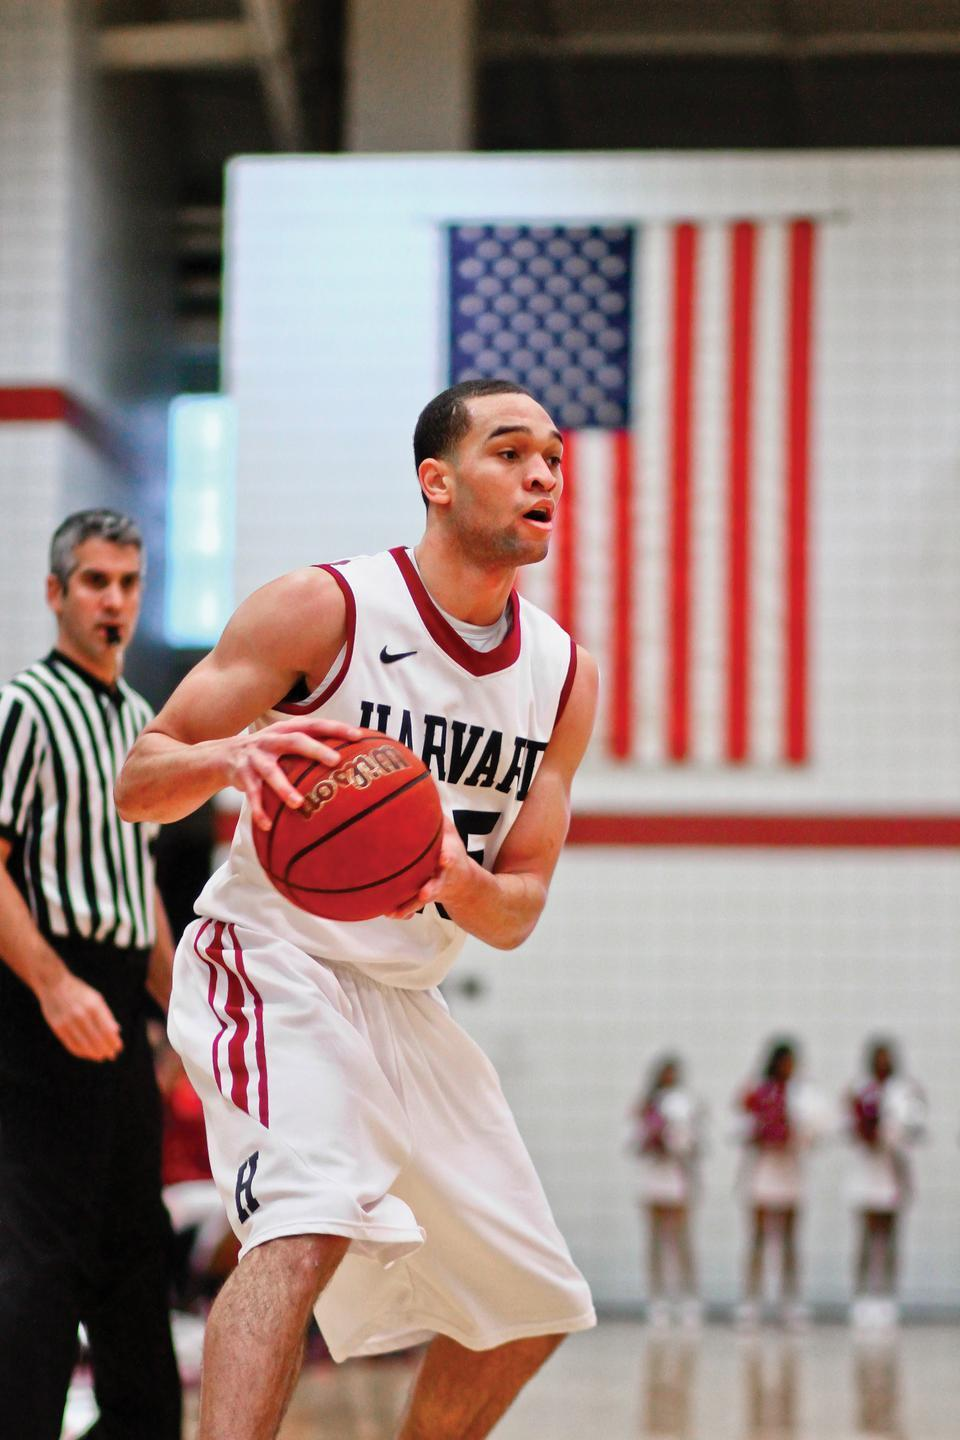 Senior Christian Webster of the Harvard men's basketball them will travel to Cuba this summer with Full Court Peace, an organization dedicated to empowering youth through the creation of basketball teams.